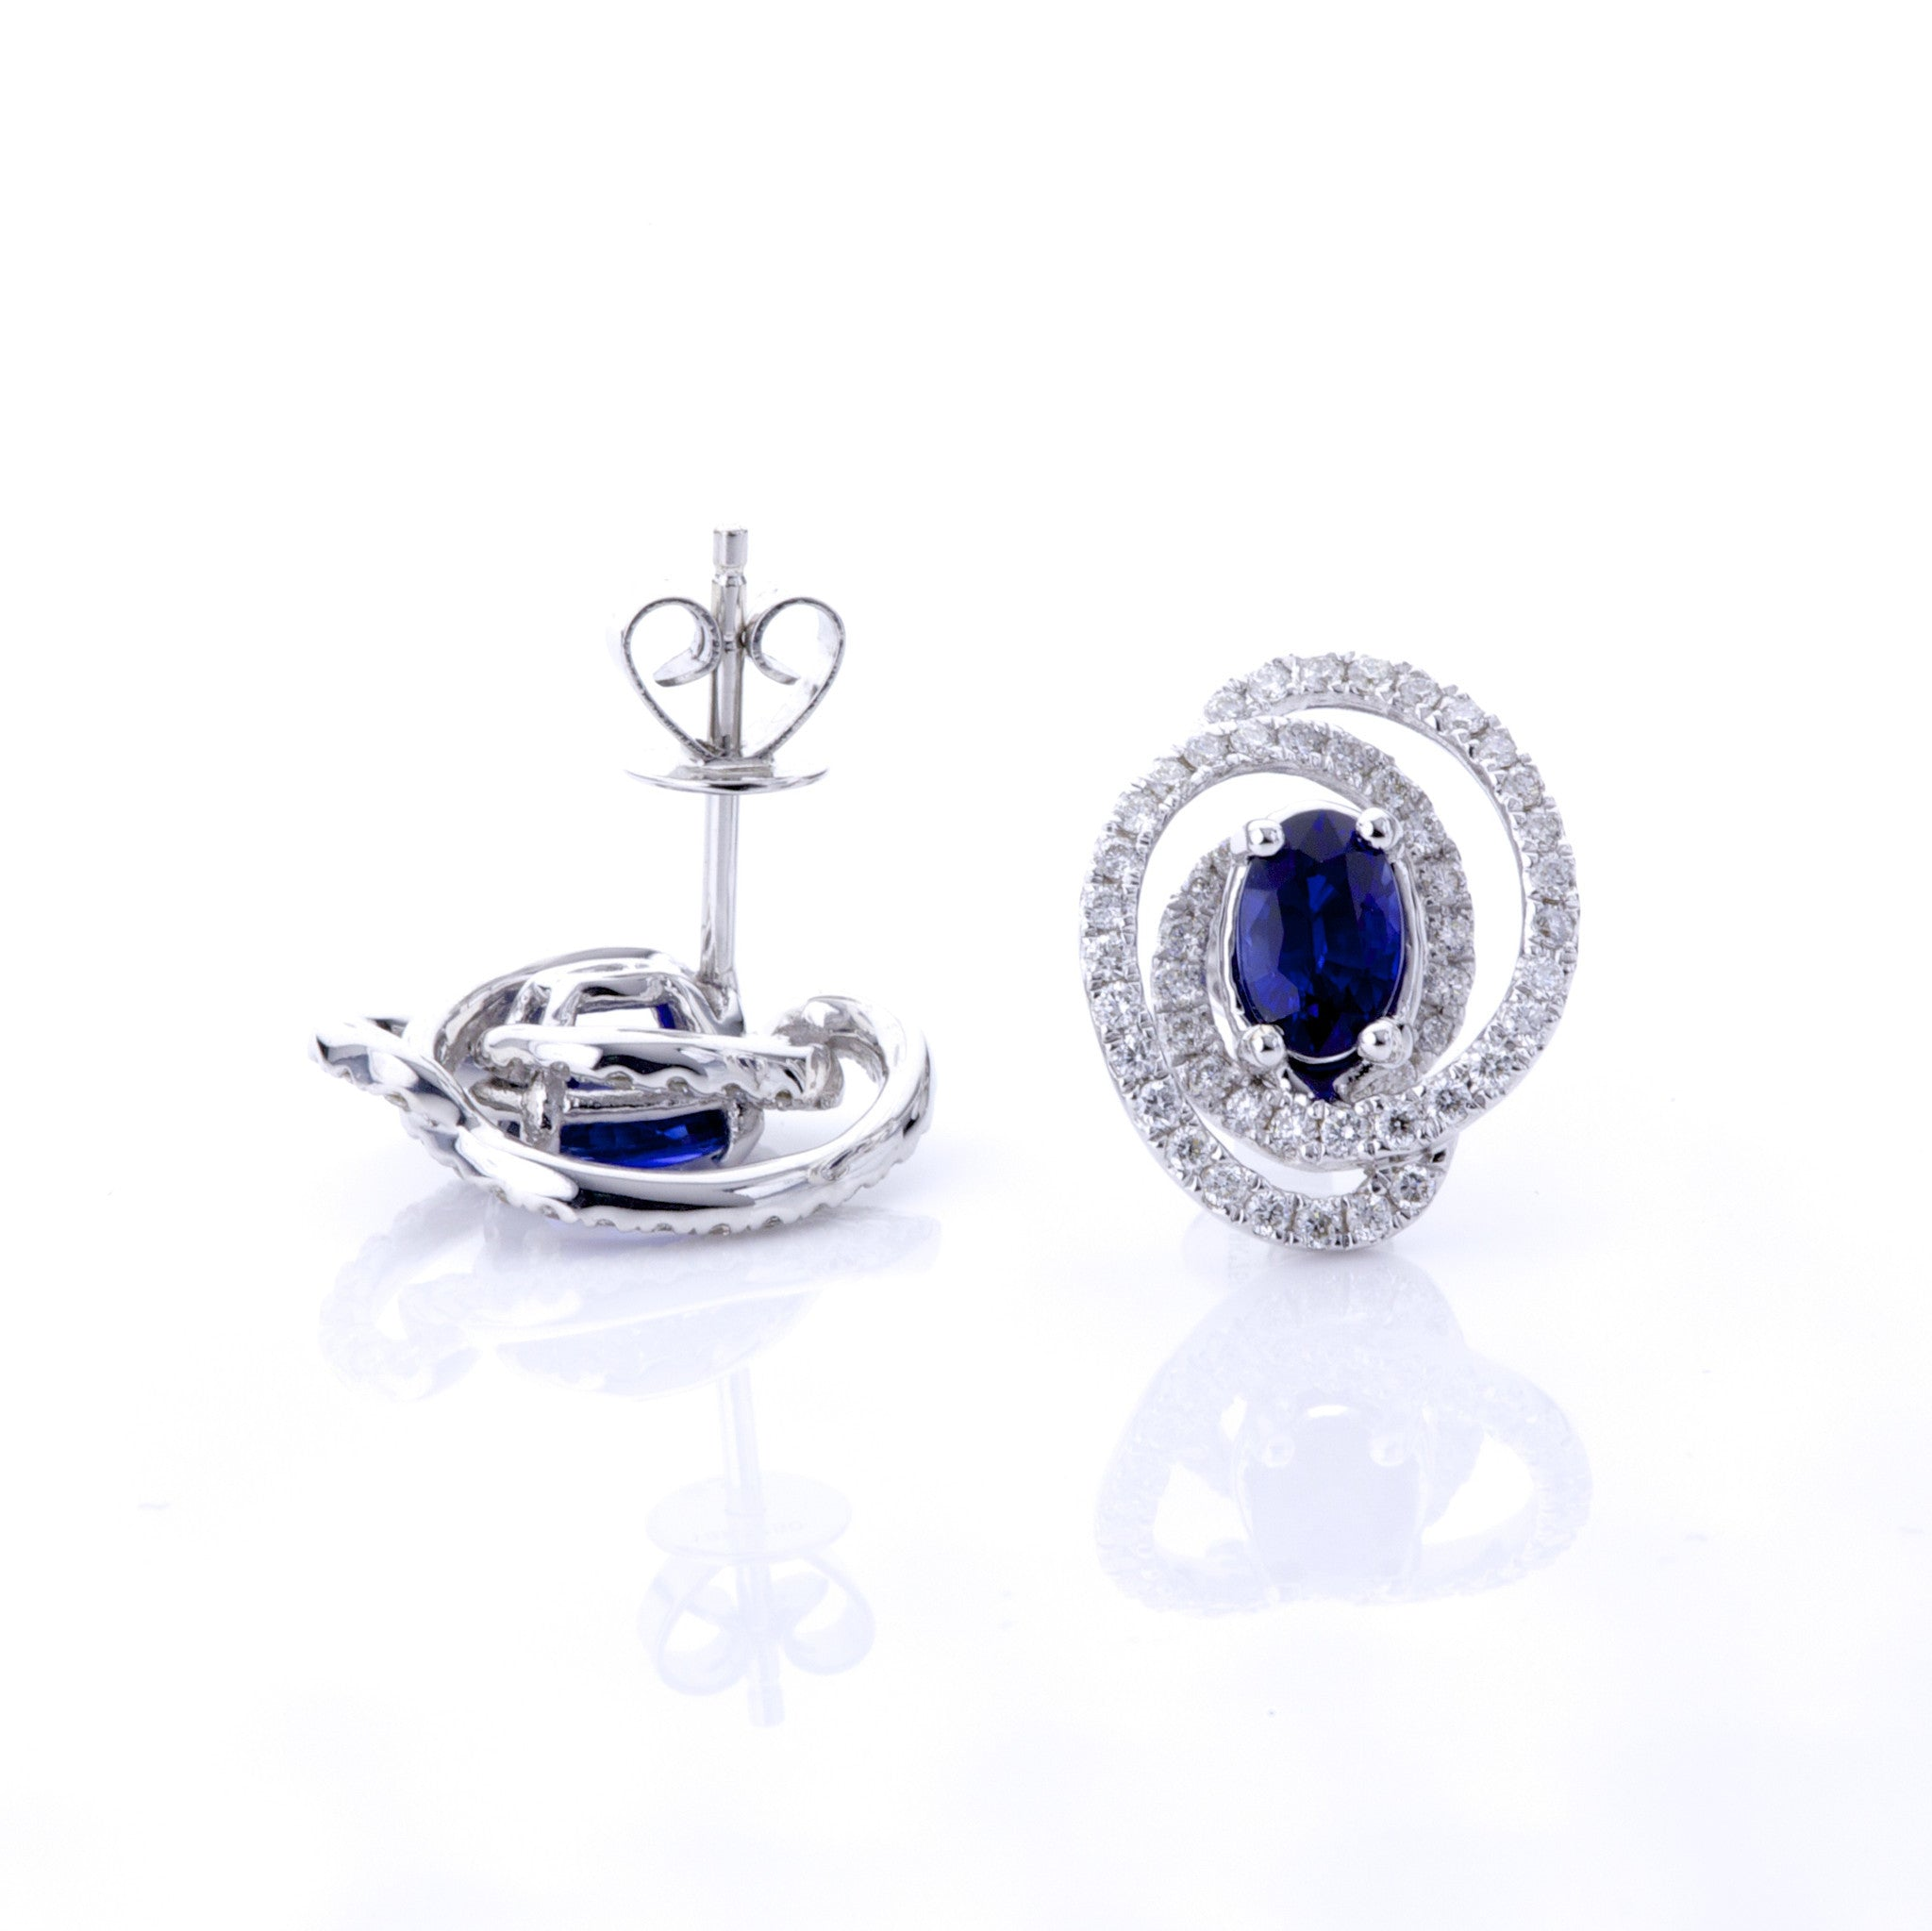 Oval Sapphire Earrings with Wrapped Diamond Halo 2